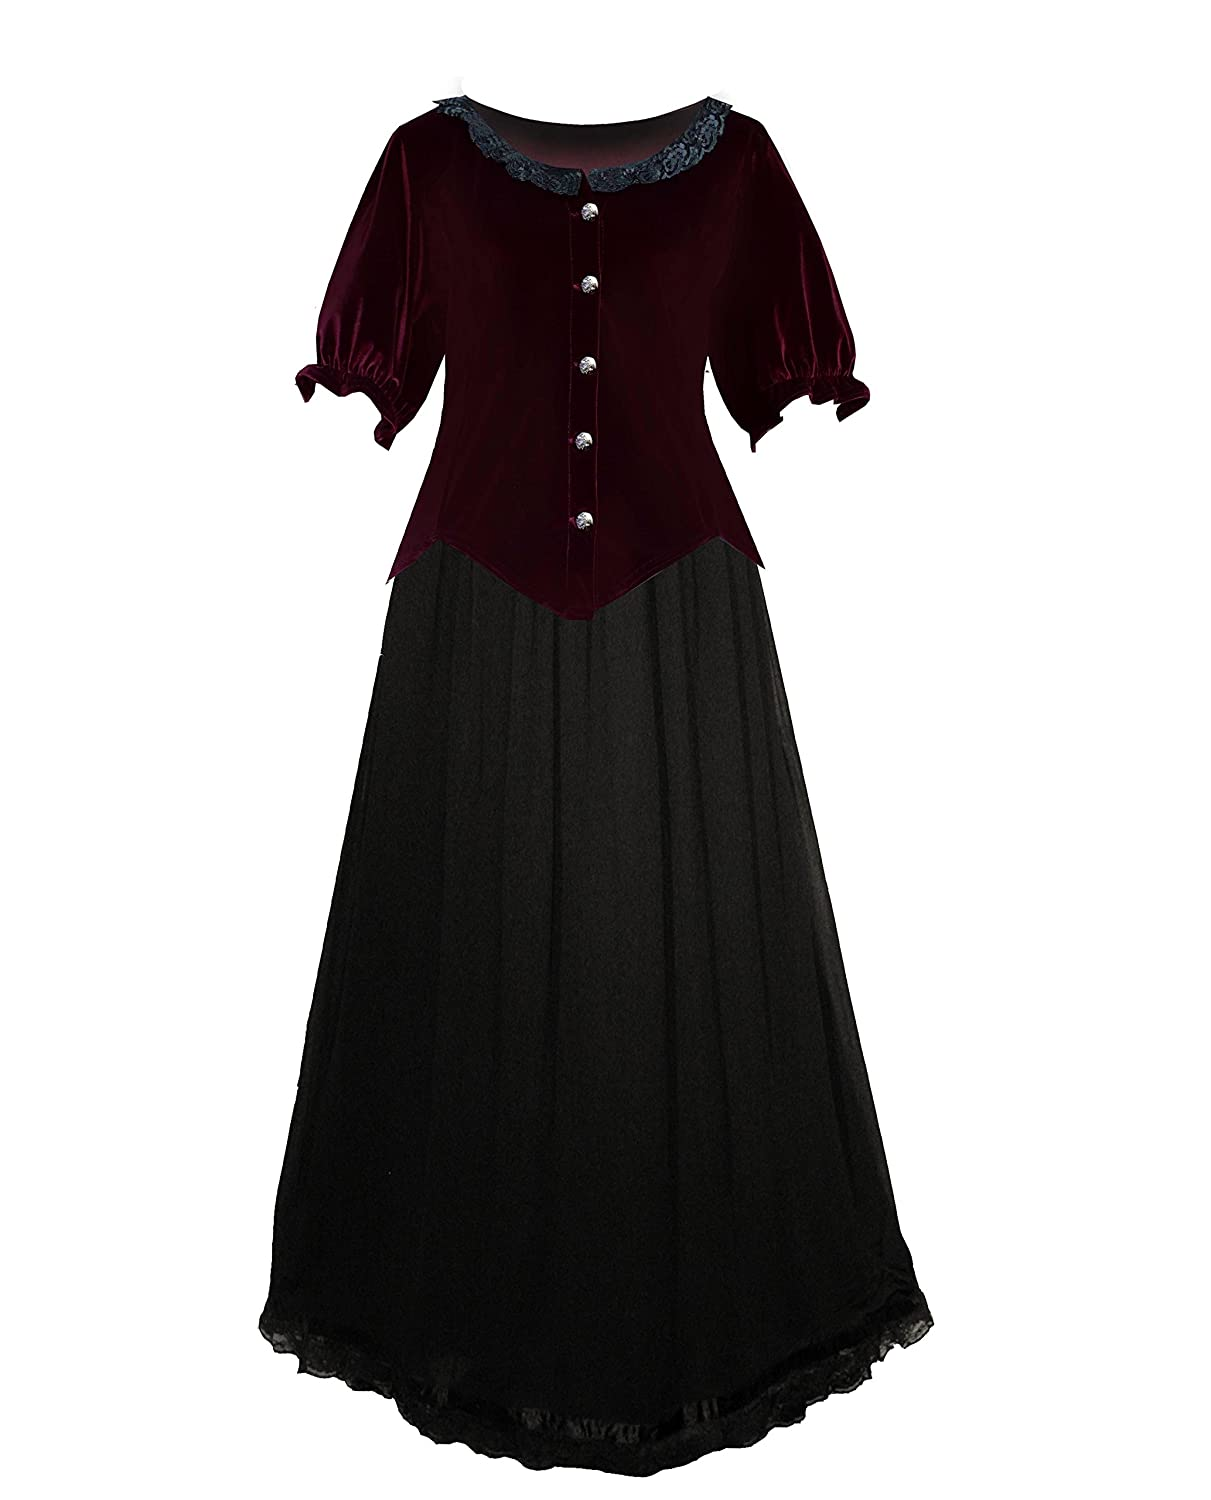 Titanic Fashion – 1st Class Women's Clothing Victorian Steampunk Gothic Renaissance Velvet Top & Long Skirt $89.00 AT vintagedancer.com